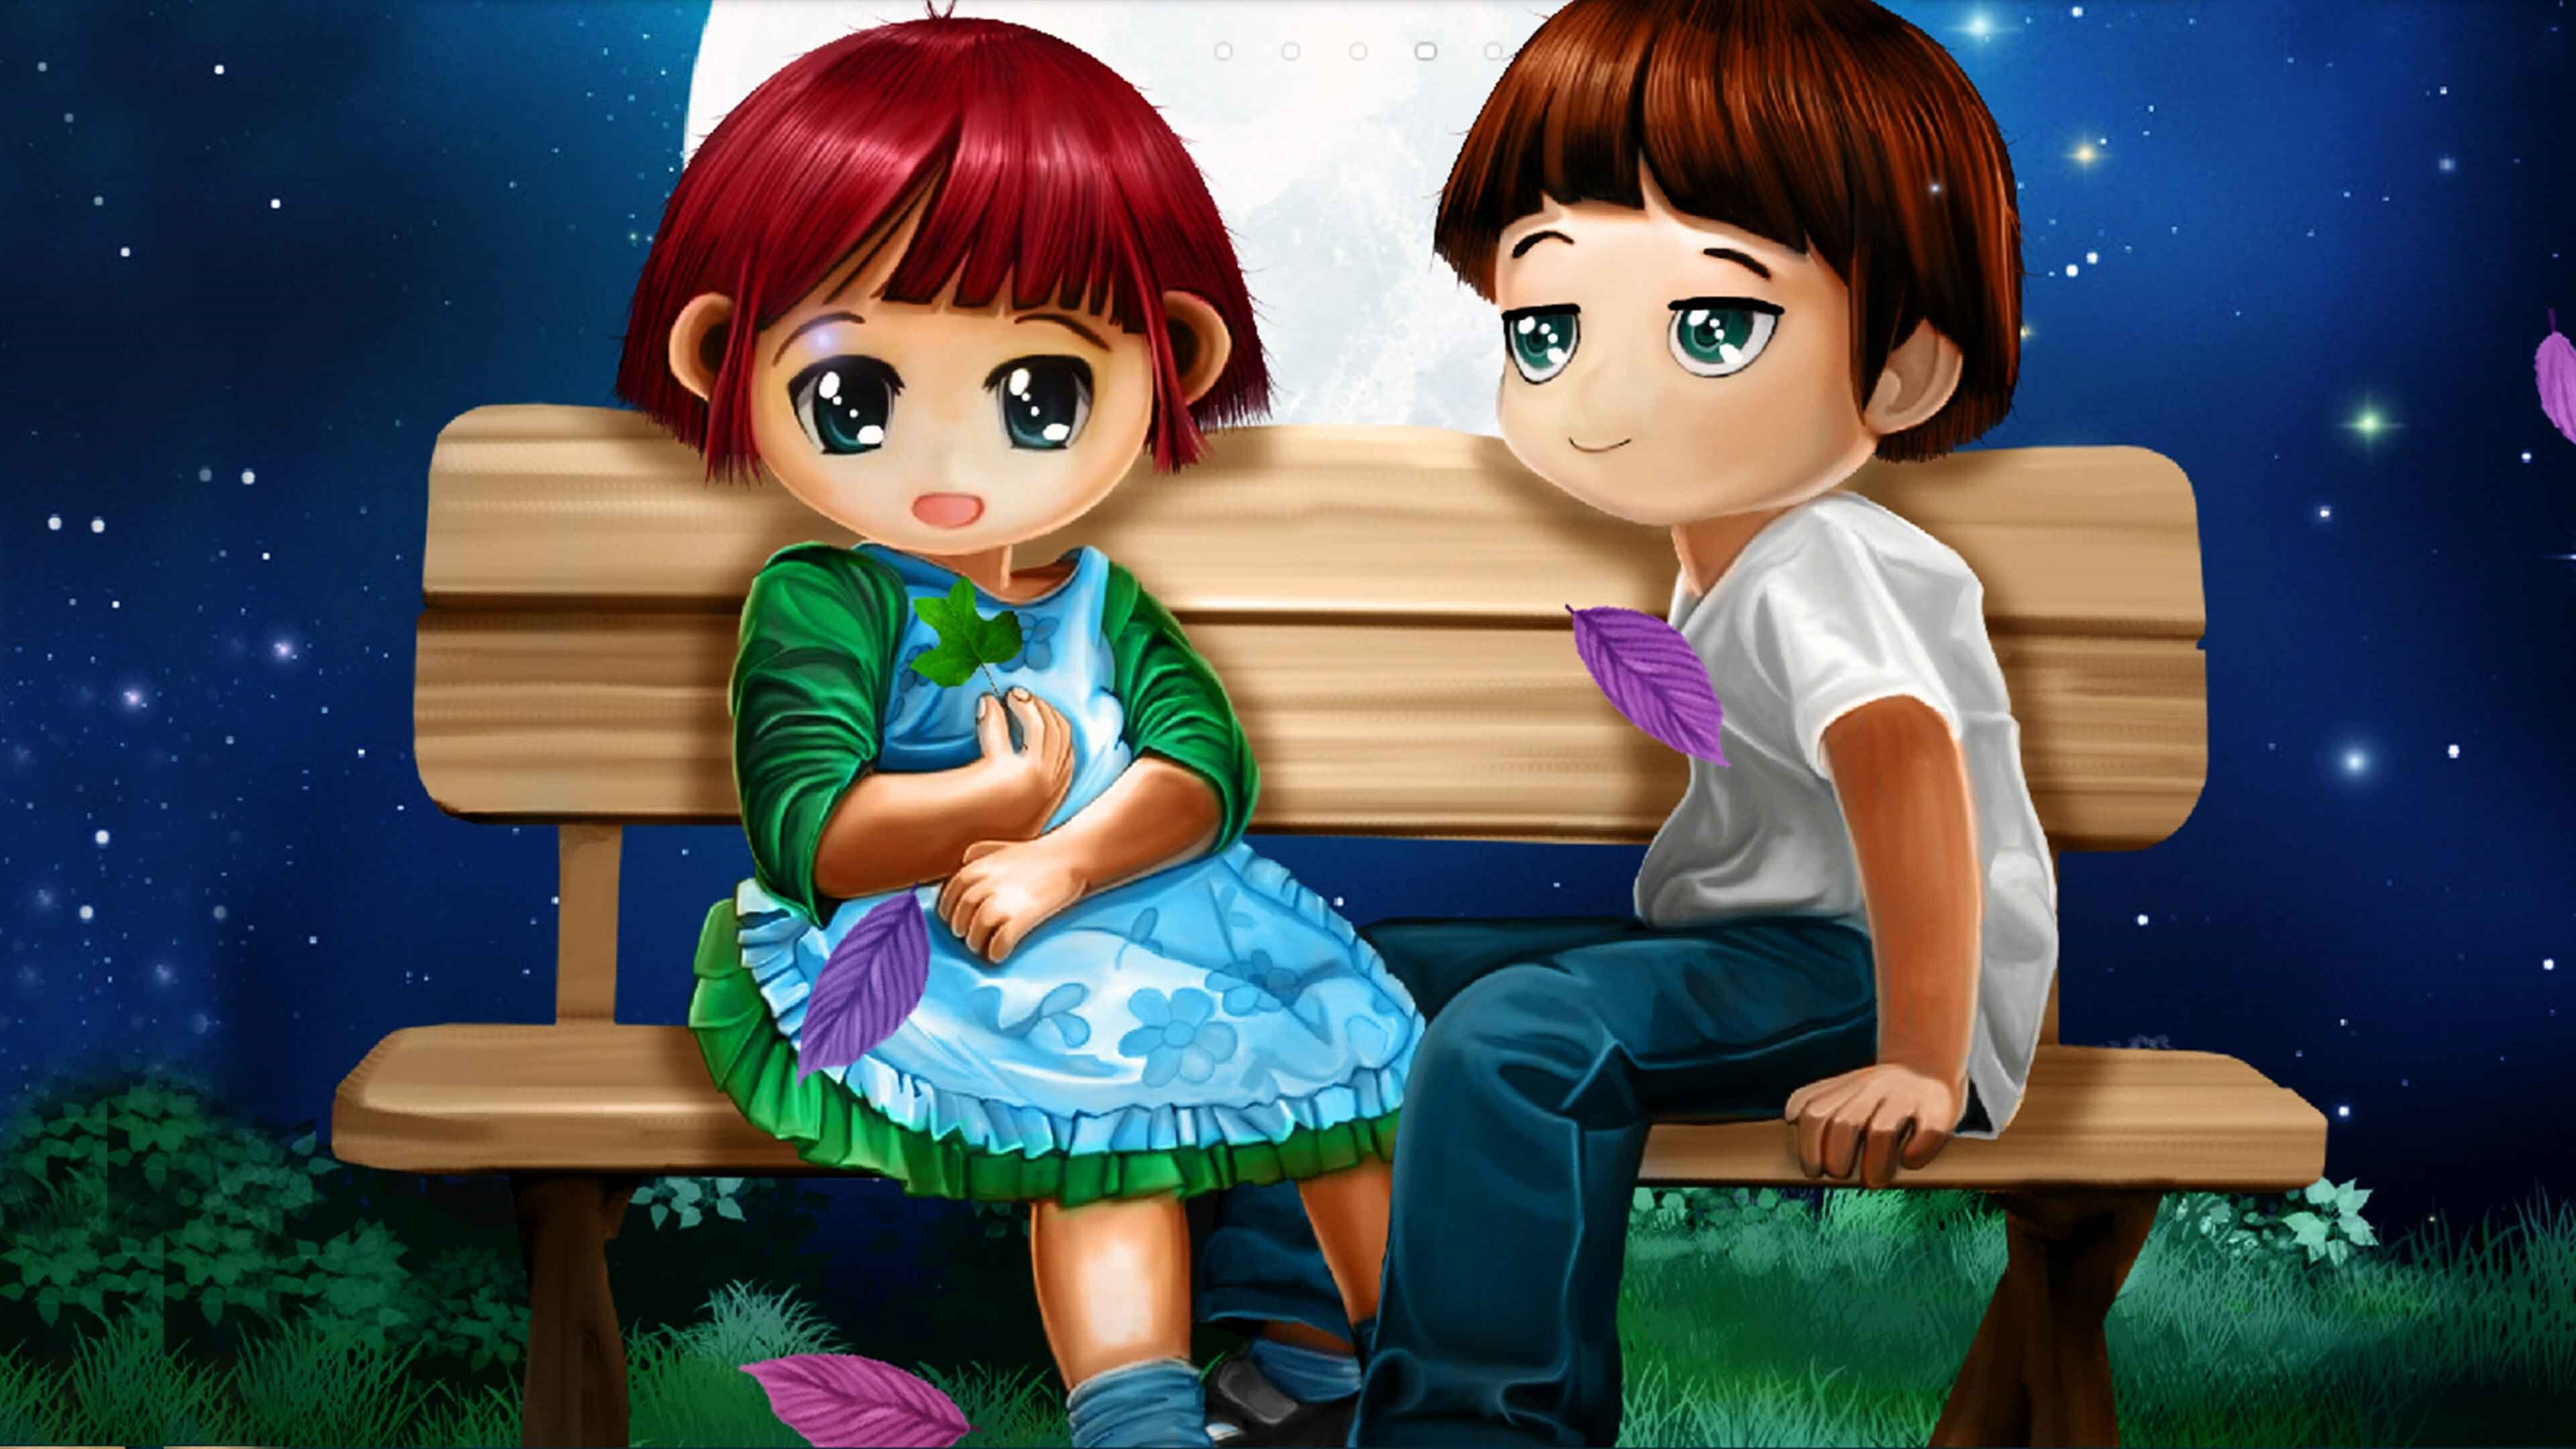 3d Love Couple Animated Hd Pictures Wallpapers: 3D Cartoon Couple 4K Wallpapers